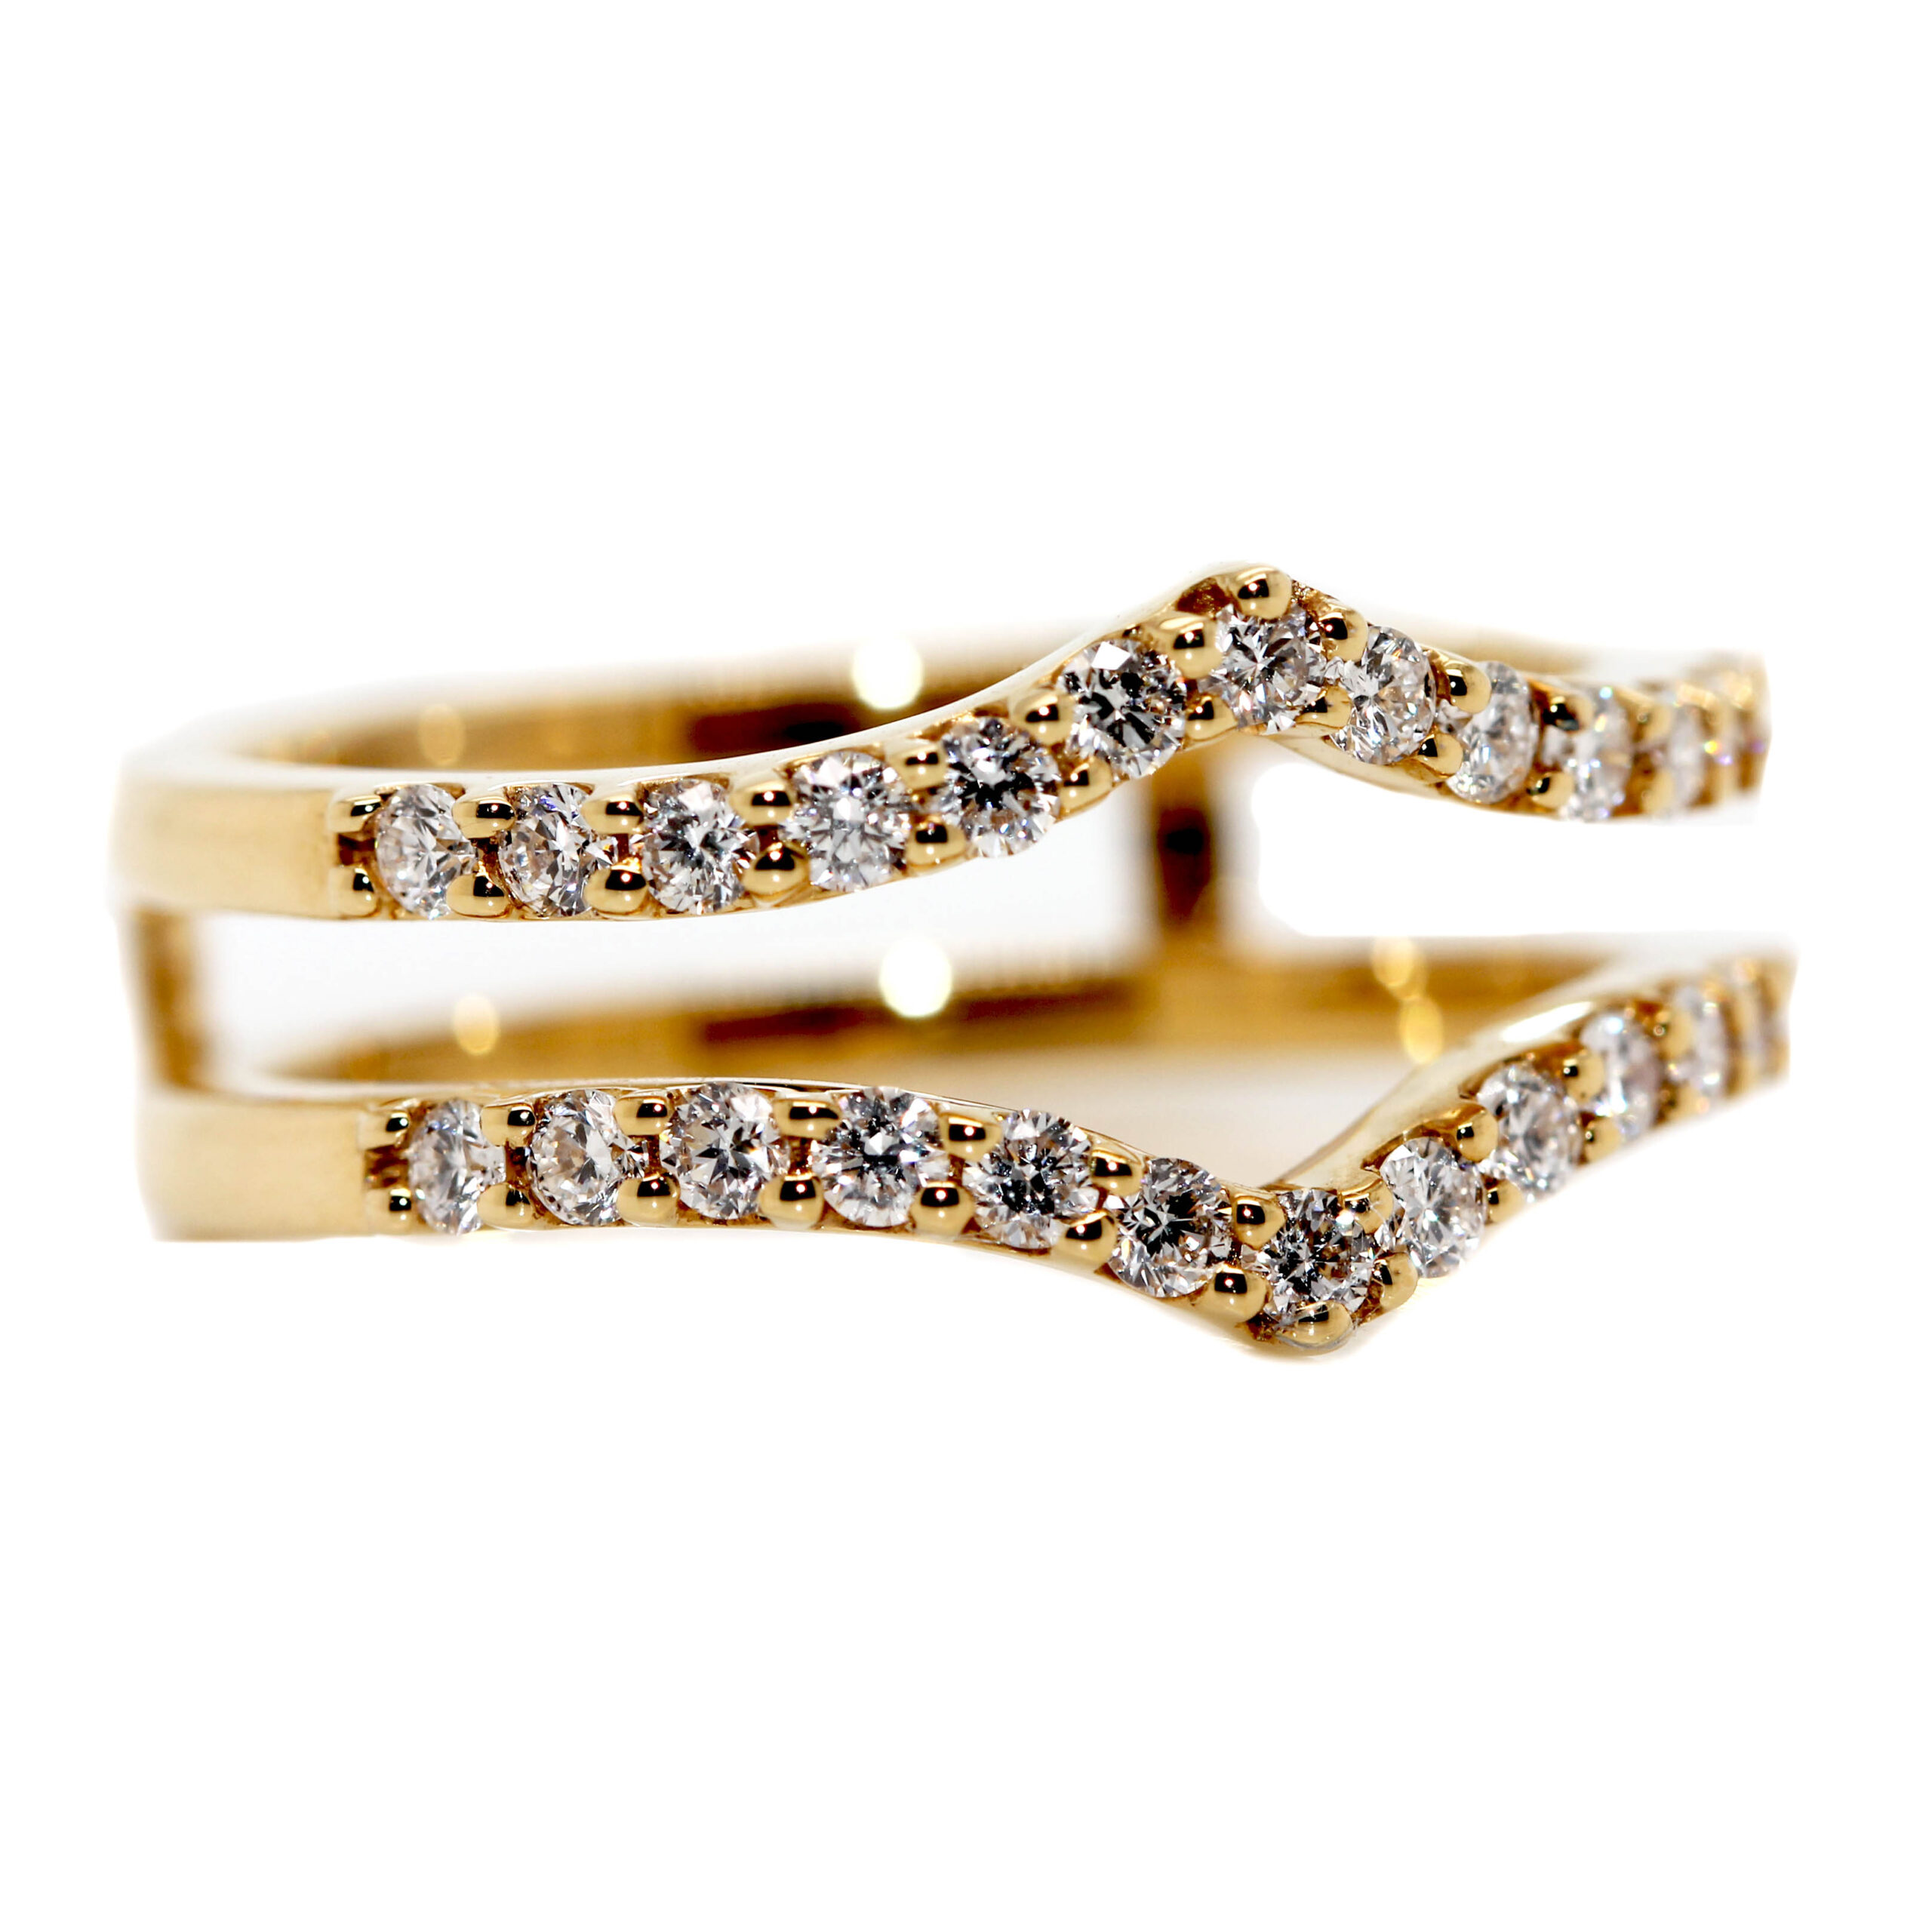 clayfield jewellery gold and diamond ring